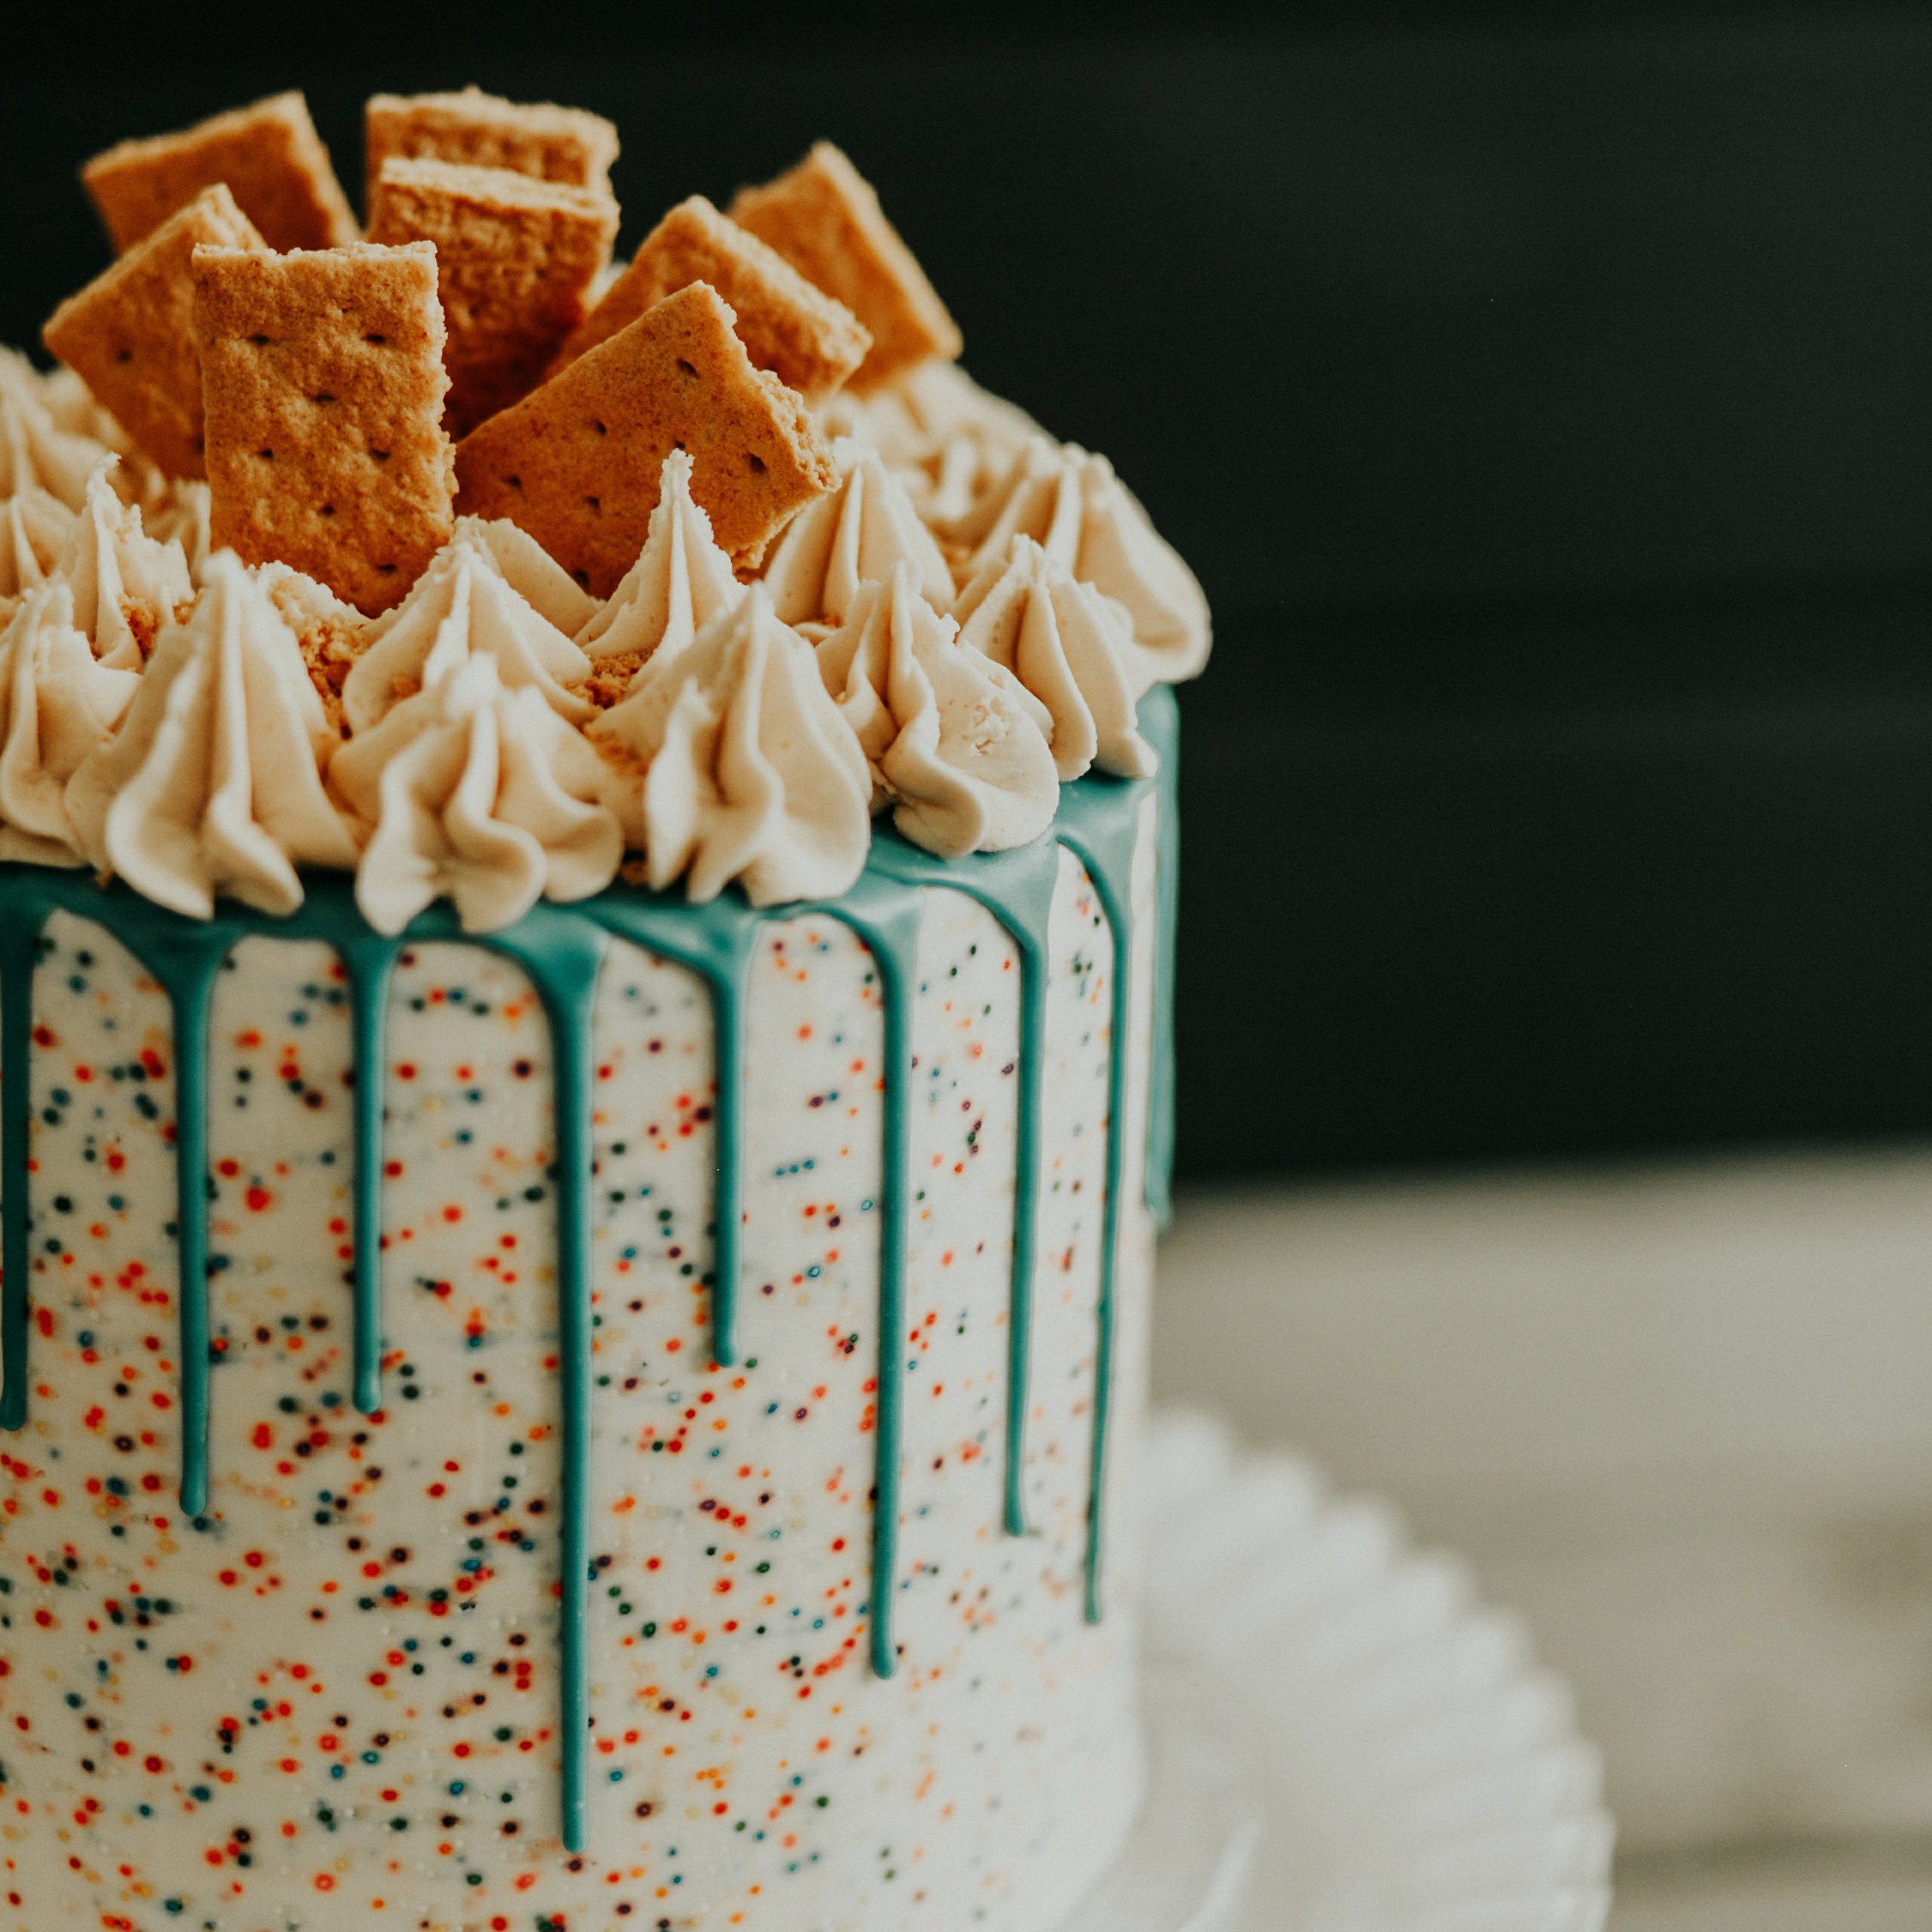 ORDER OUR STANDARD TALL CAKES. - You can now order our tall cakes with chocolate drips. Our cakes feed between 5-50 people. Click below to see our options! Remember all vegan and always good!